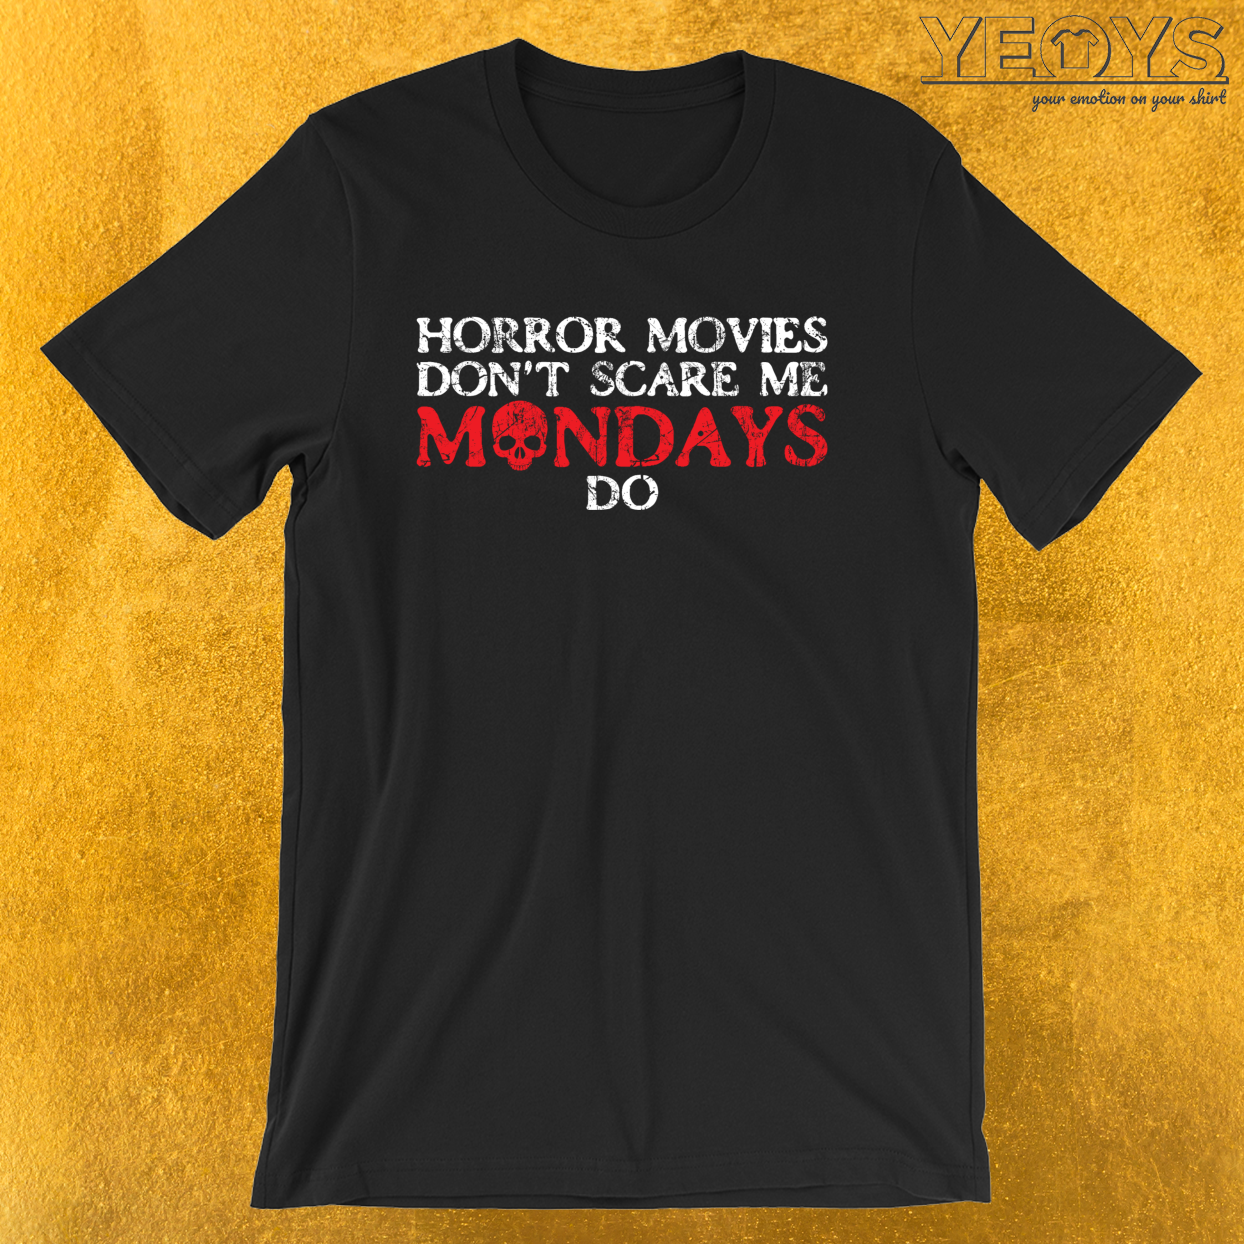 Horrormovies Don't Scare Me Mondays Do – Funny Horror Movie Tee